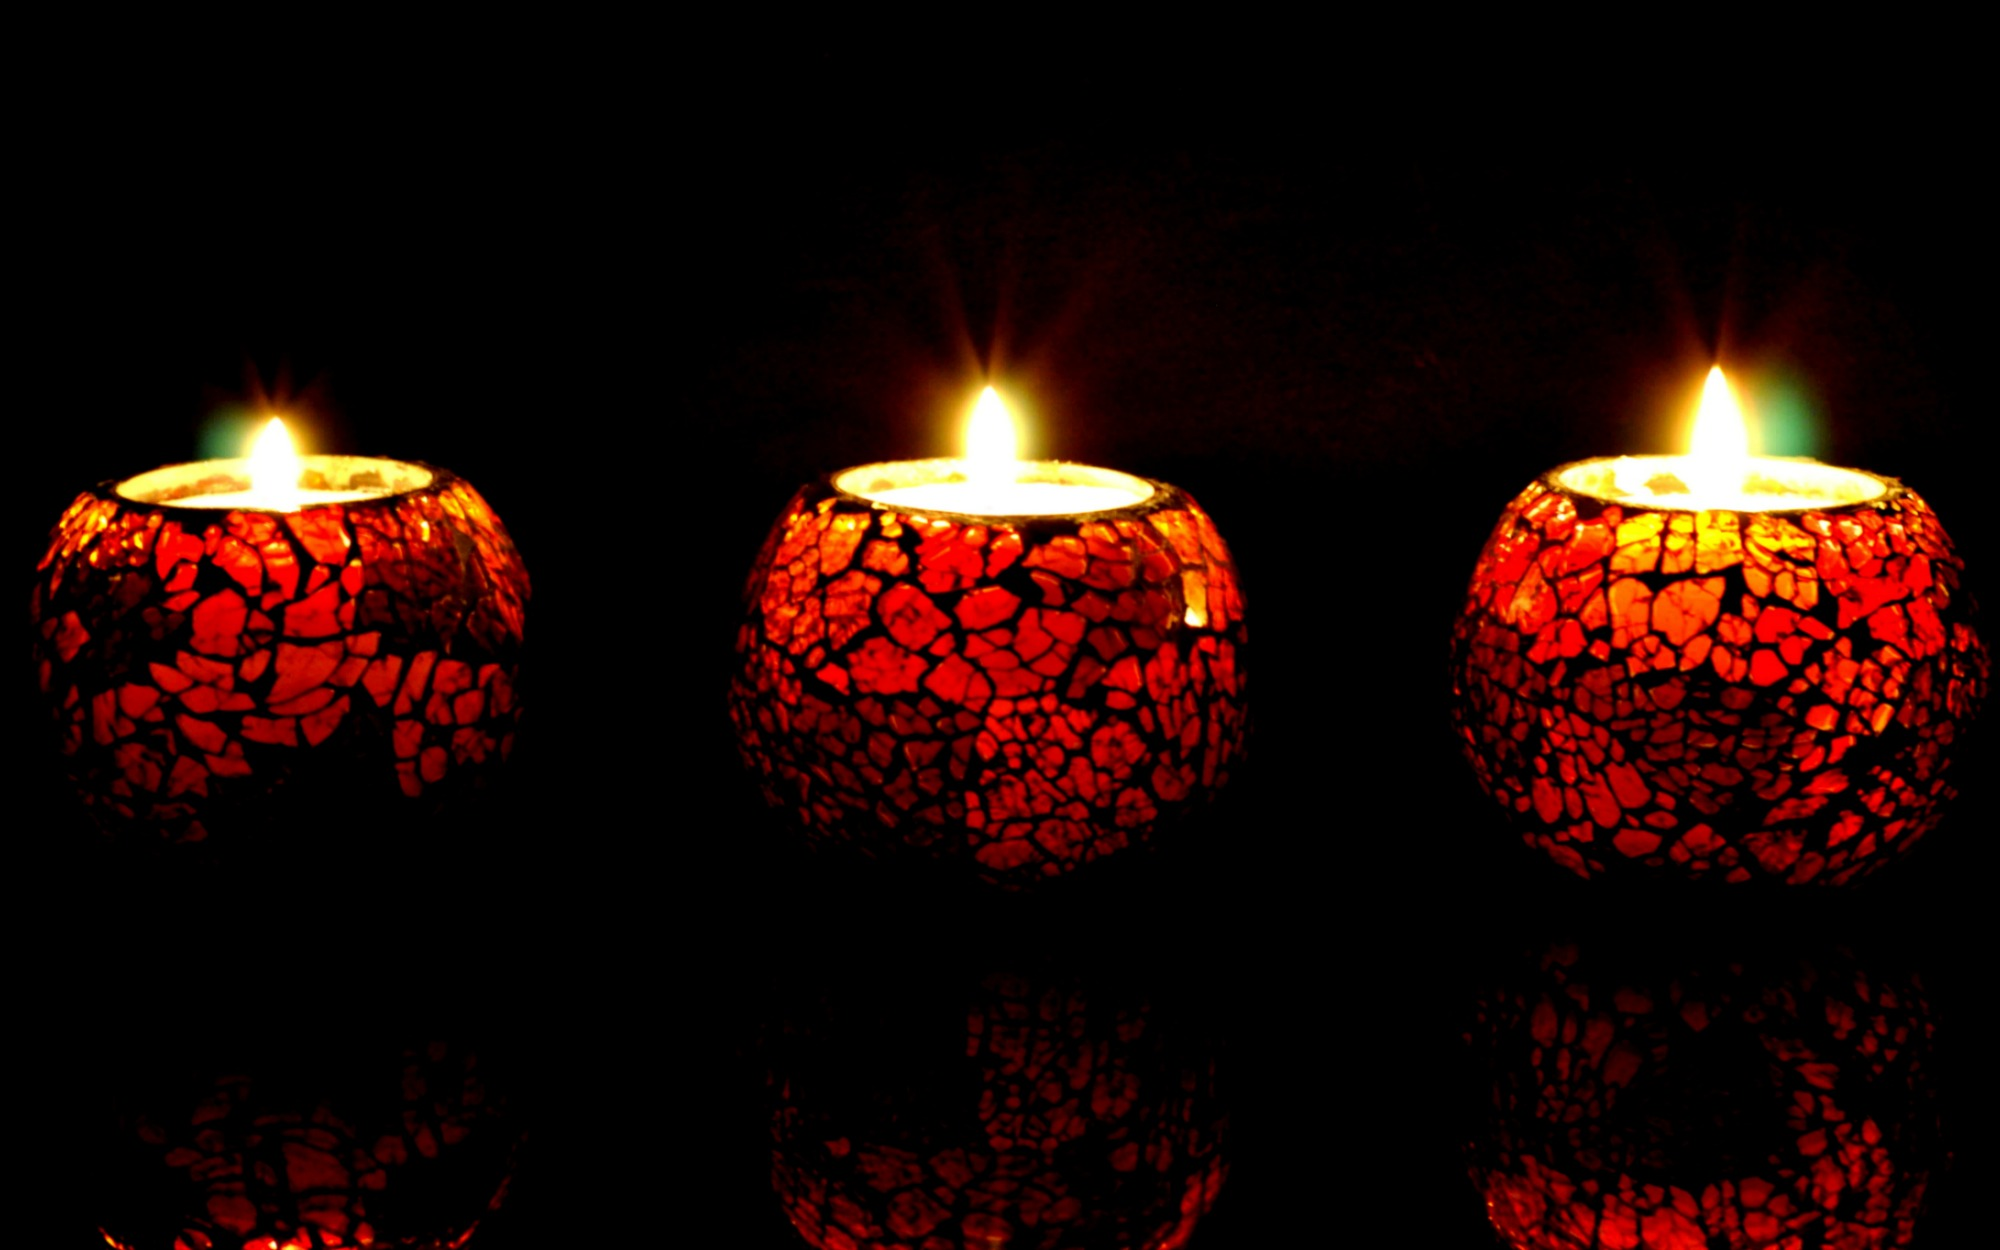 Amazing Wallpaper Love Diwali - 7ThingsDiwali_111115_EDITED  You Should Have_905145.jpg